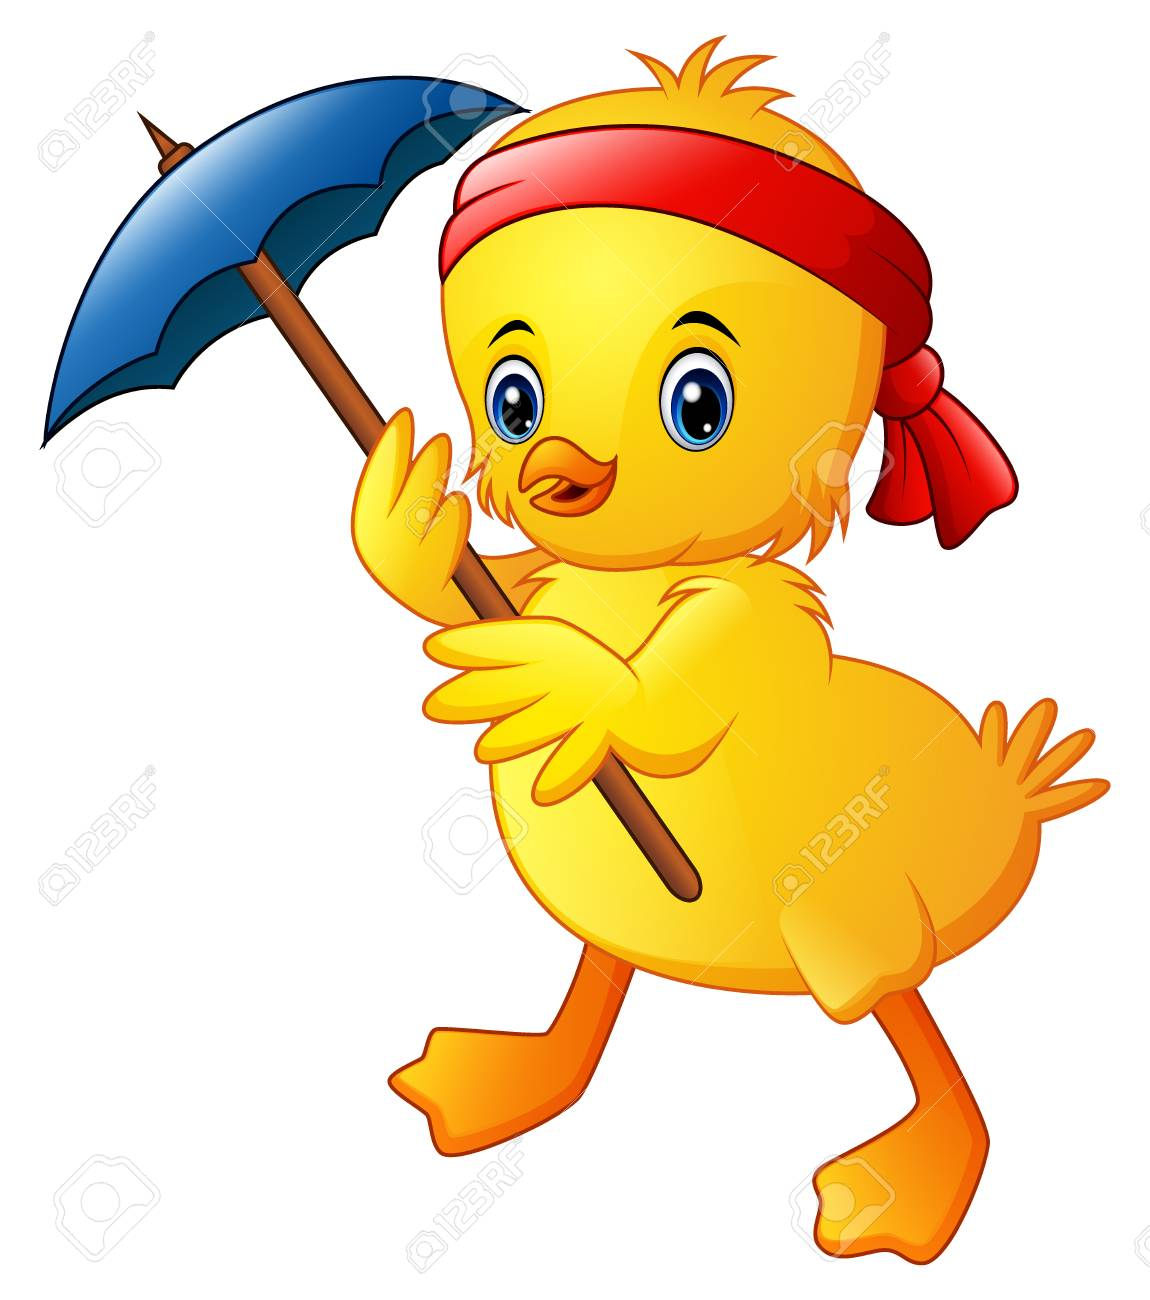 Cute cartoon duck with blue umbrella and red headband Stock Photo - 97861115 863ce125f72